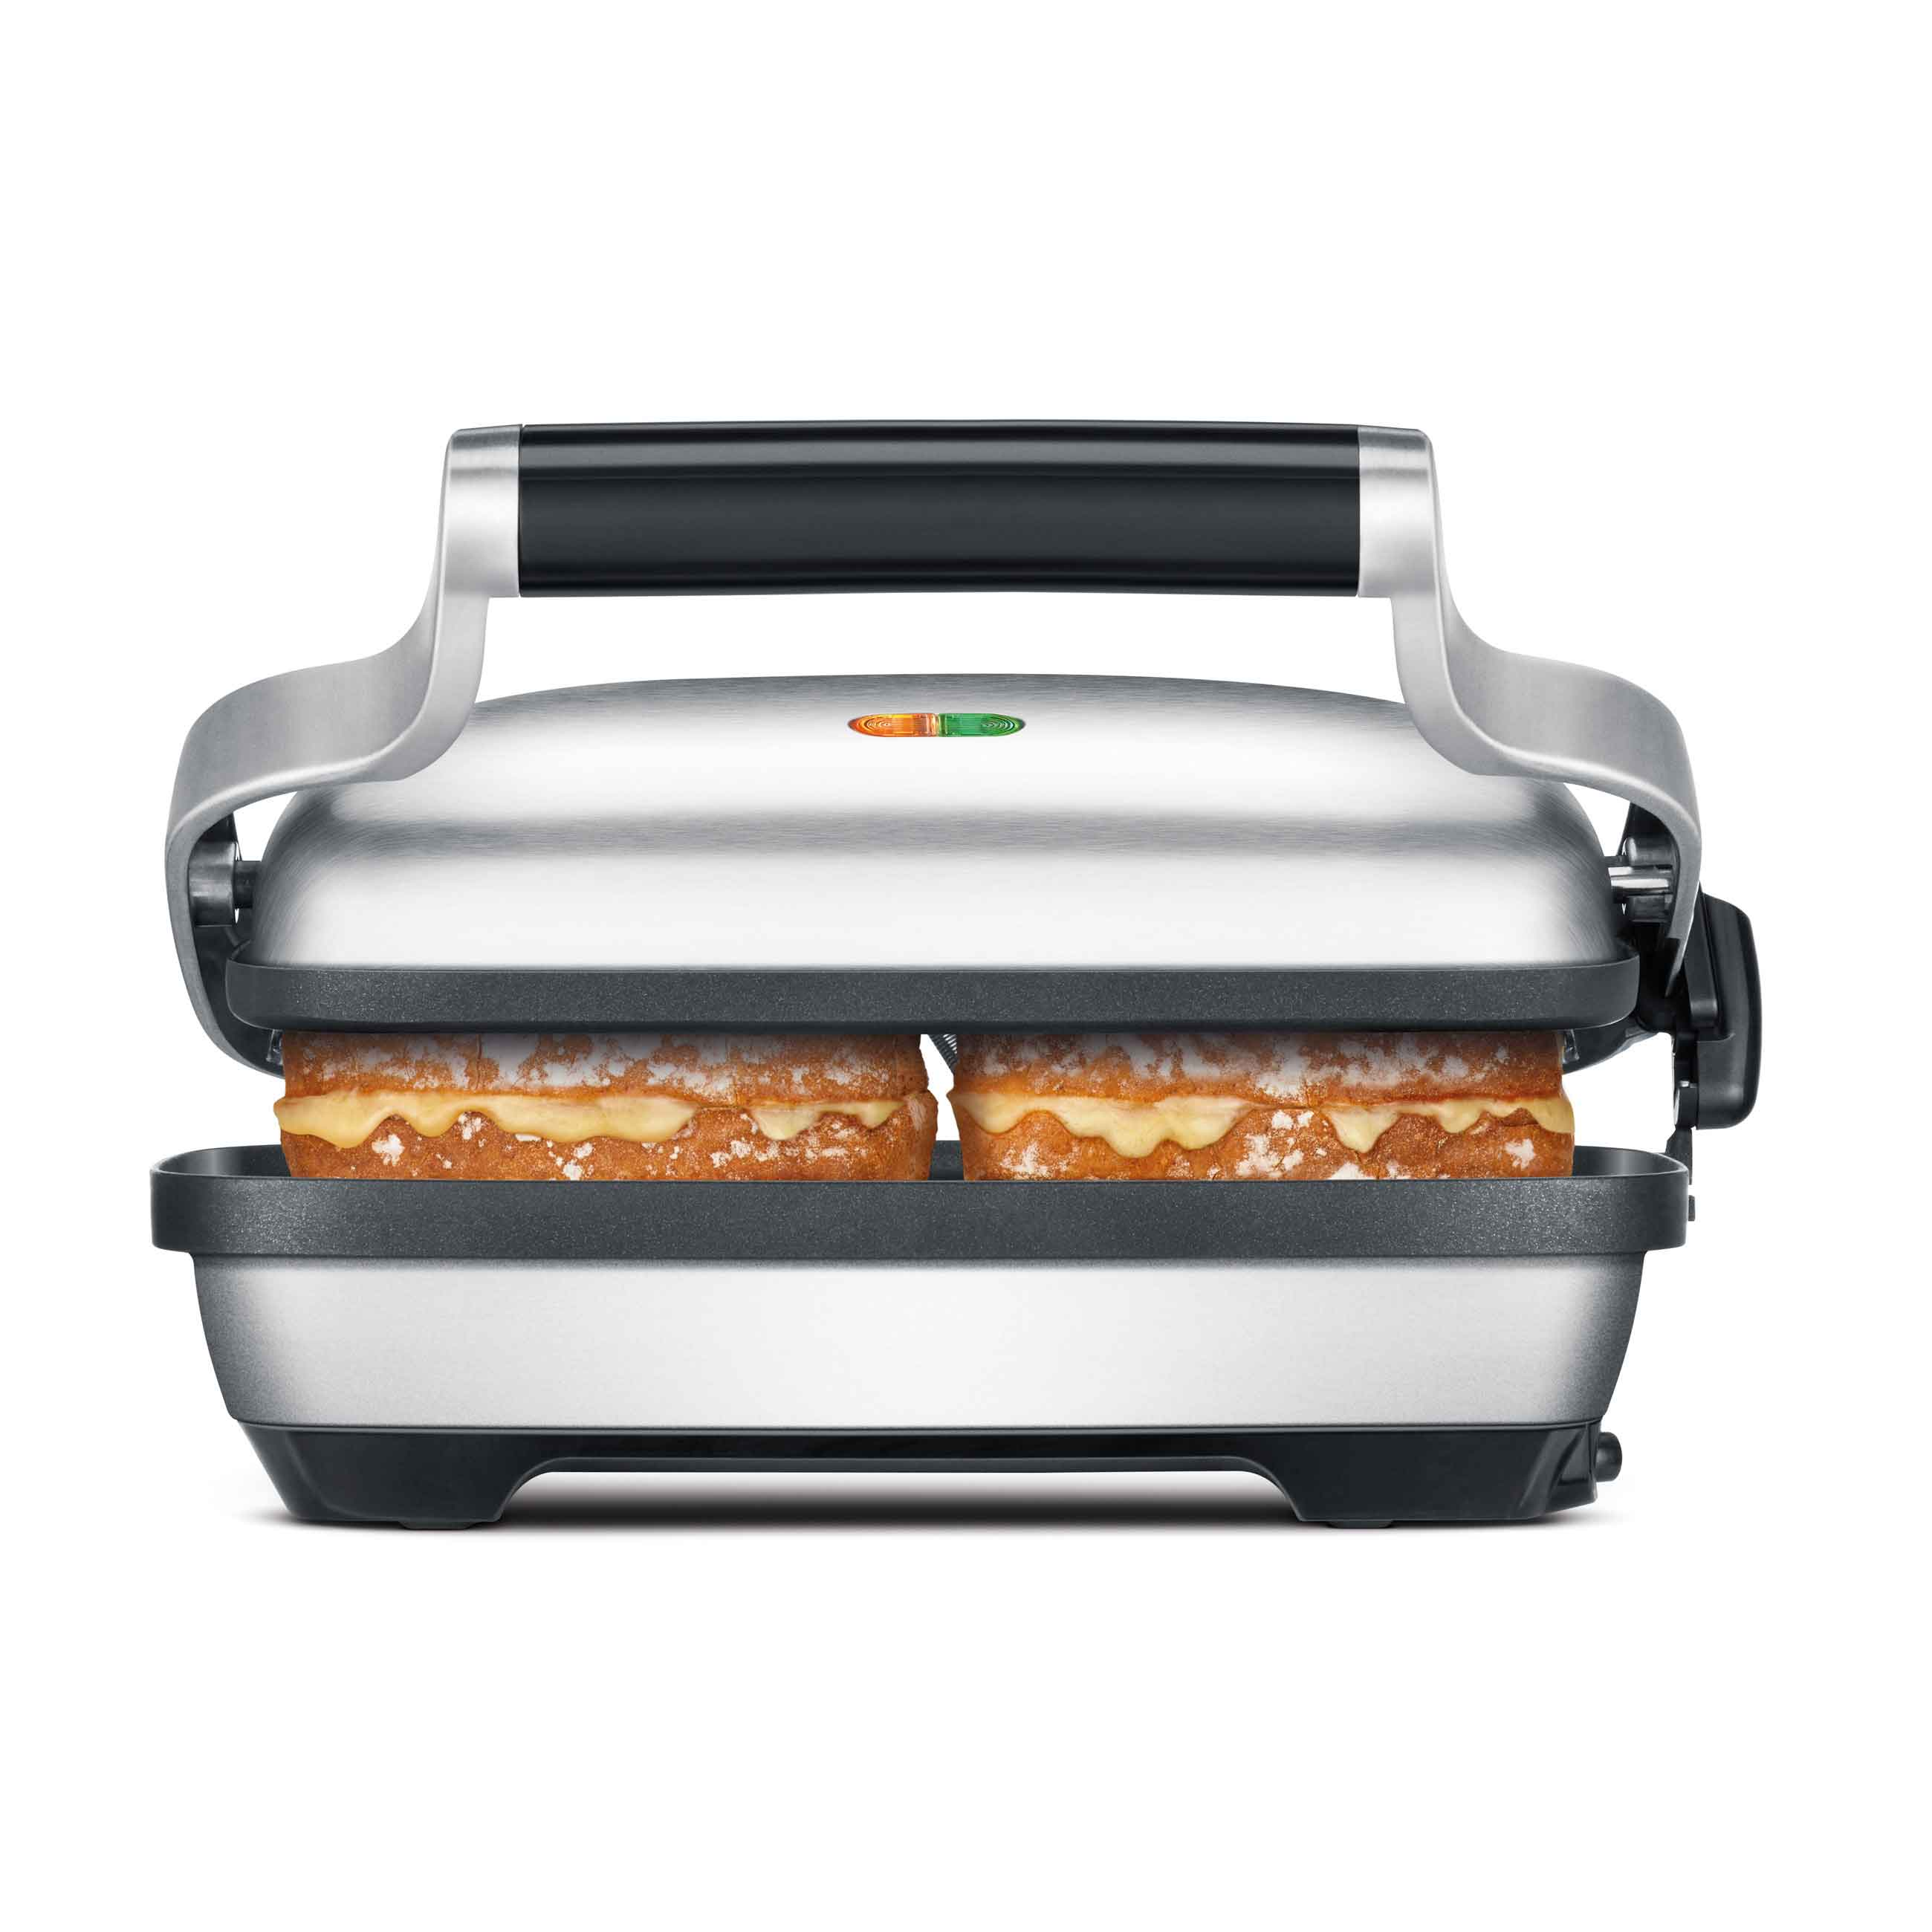 The Perfect Press™ Grills & Sandwich Makers In Brushed Stainless Steel with bread